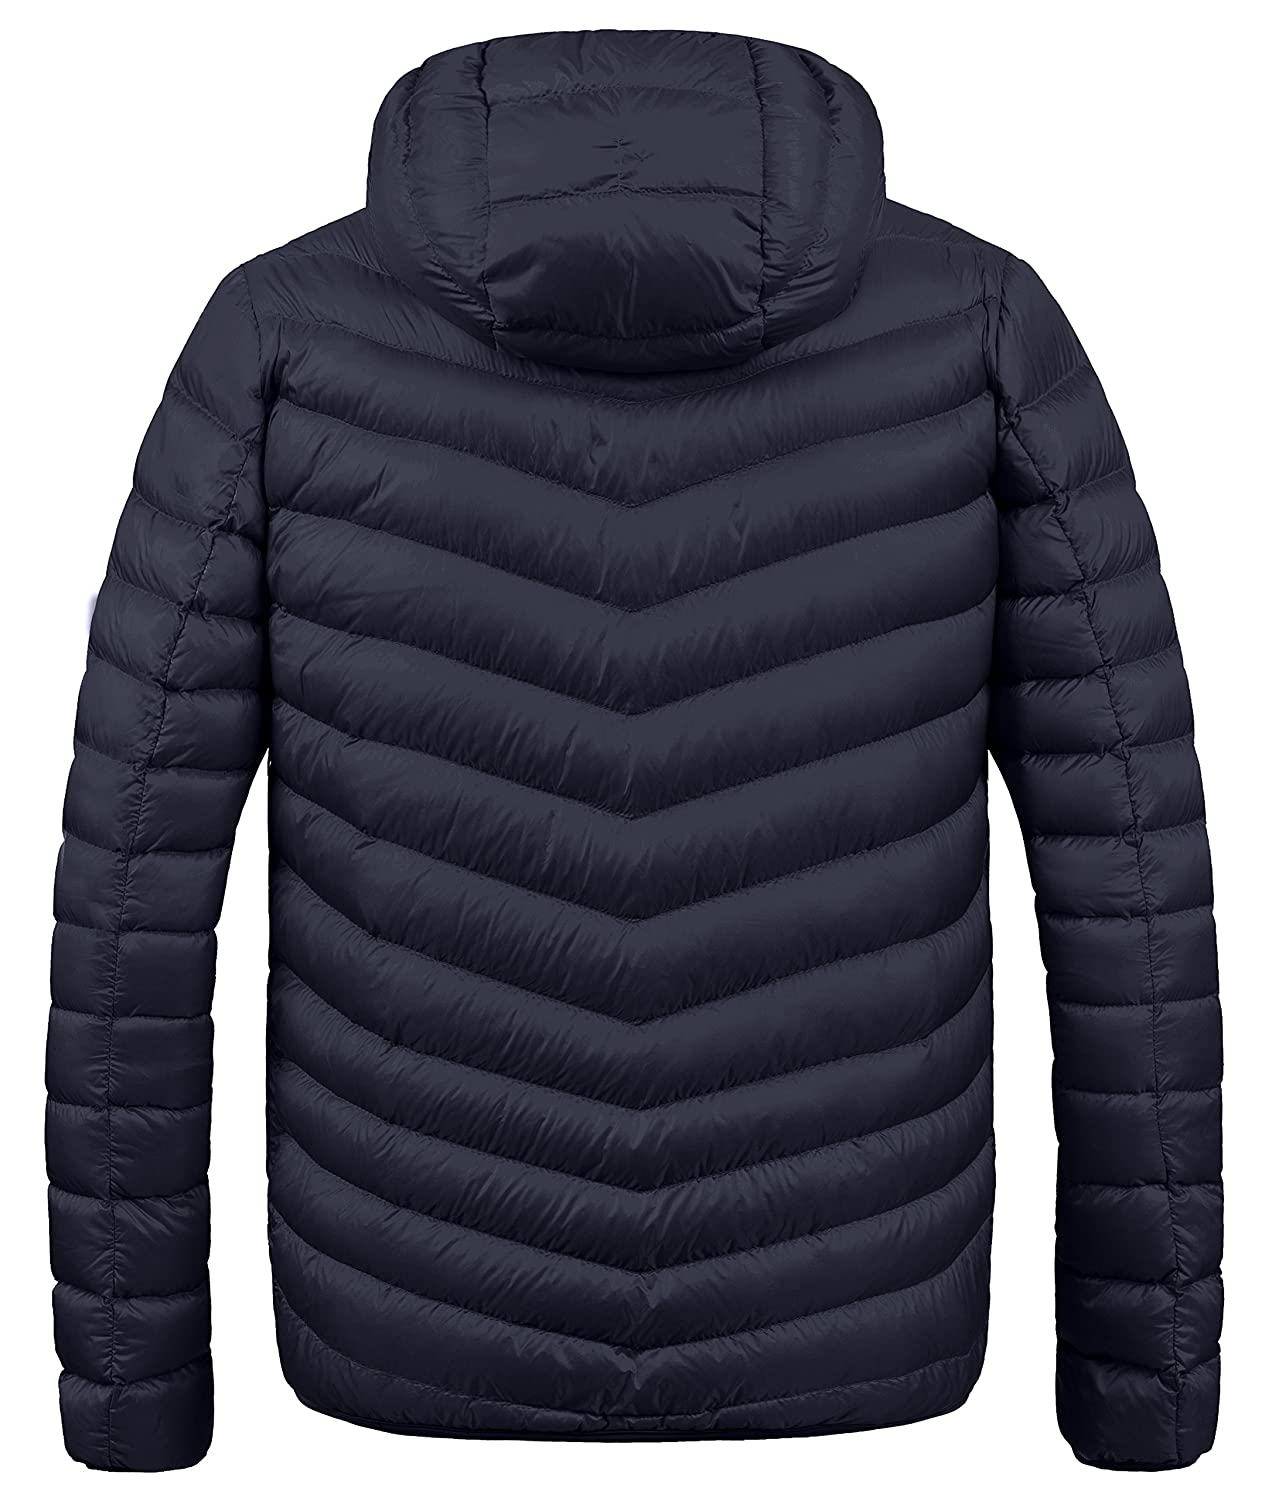 be5eb9df2 ZSHOW Men's Winter Hooded Packable Down Jacket